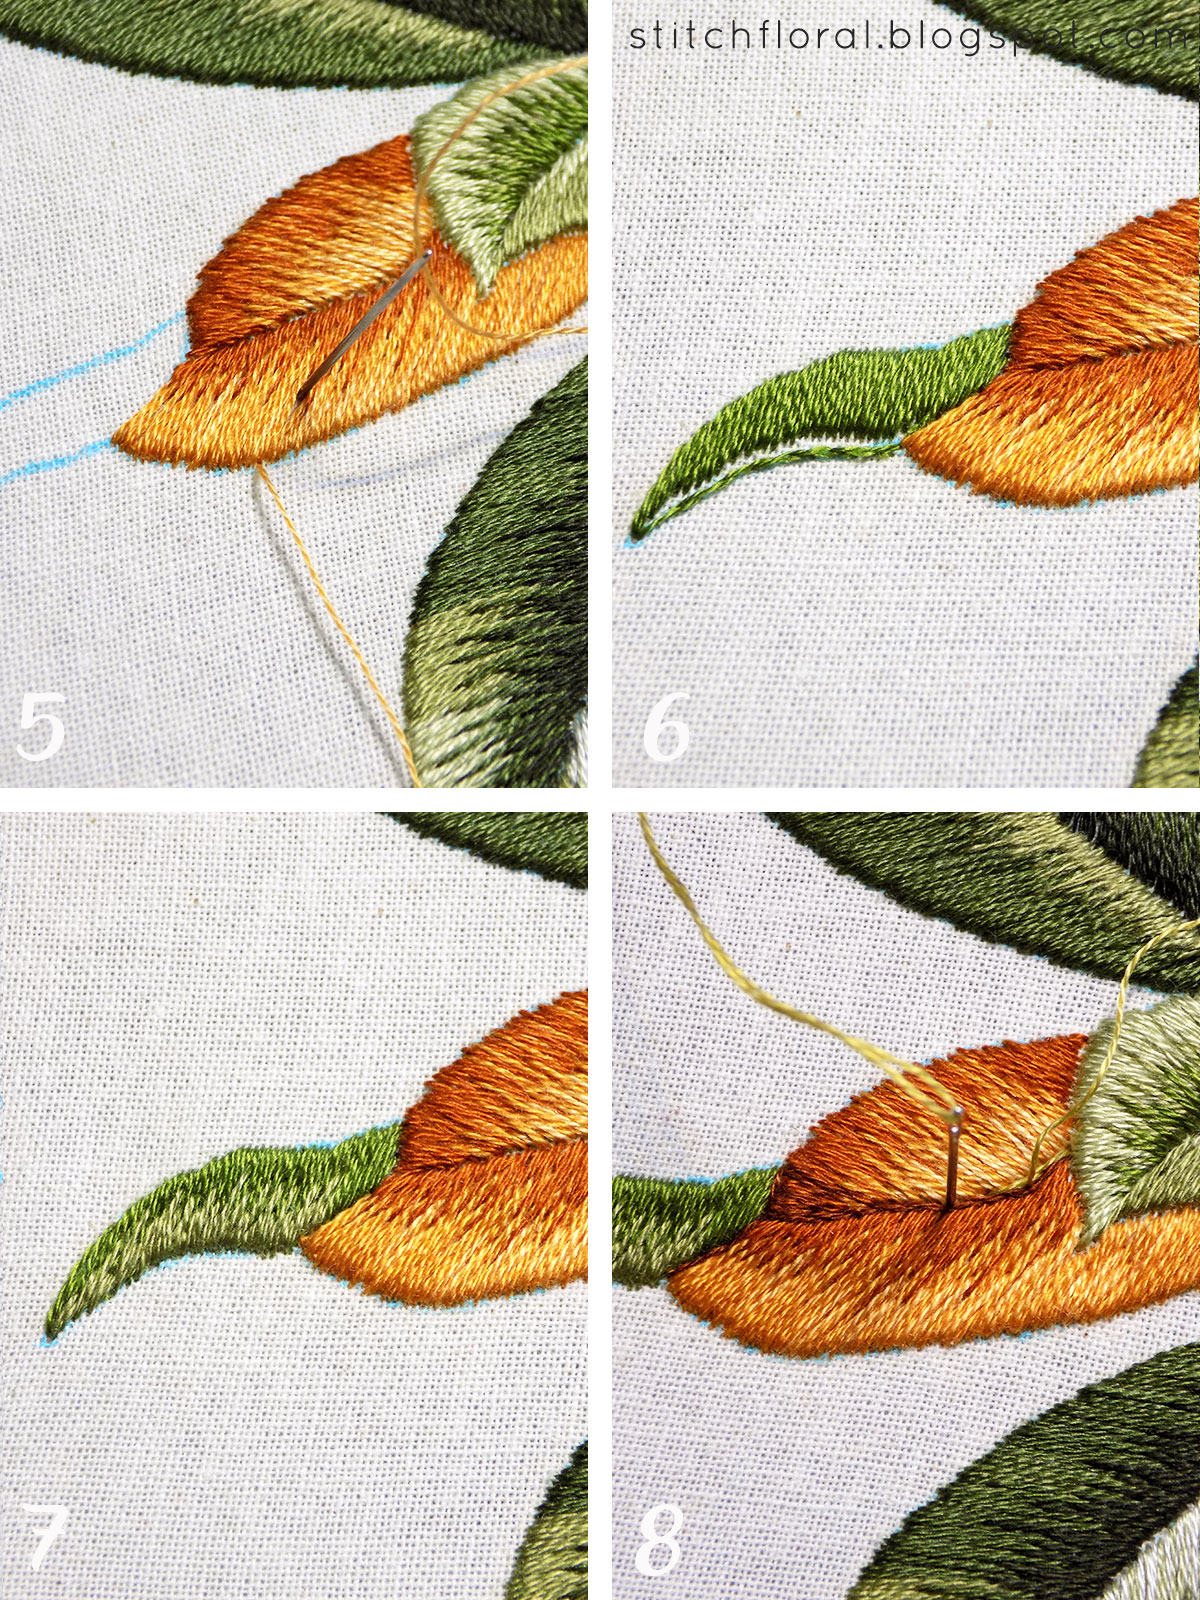 Magnolia Stitch Along Part 5